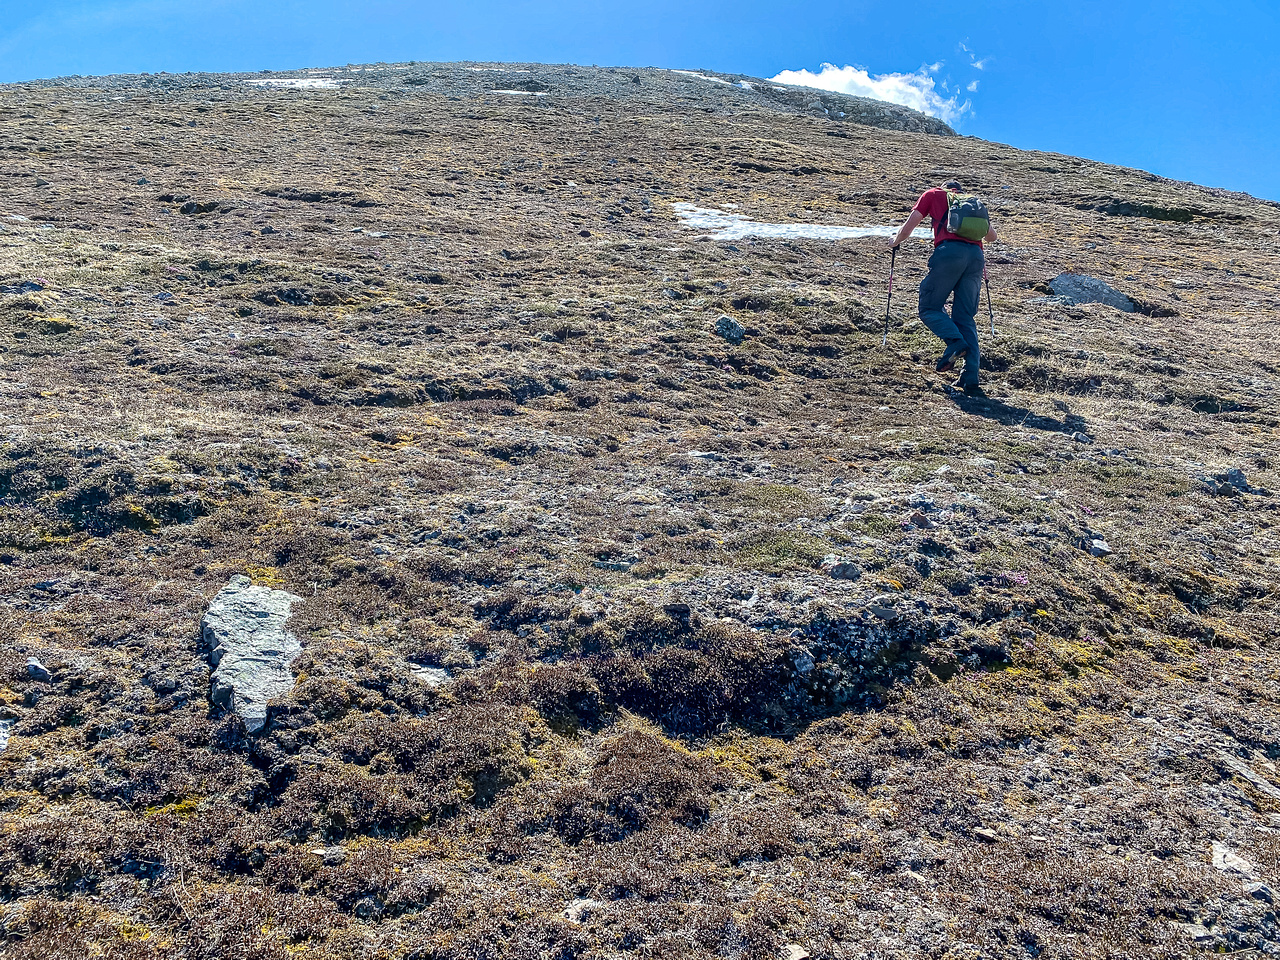 Hiking up steep slopes to the upper east ridge.